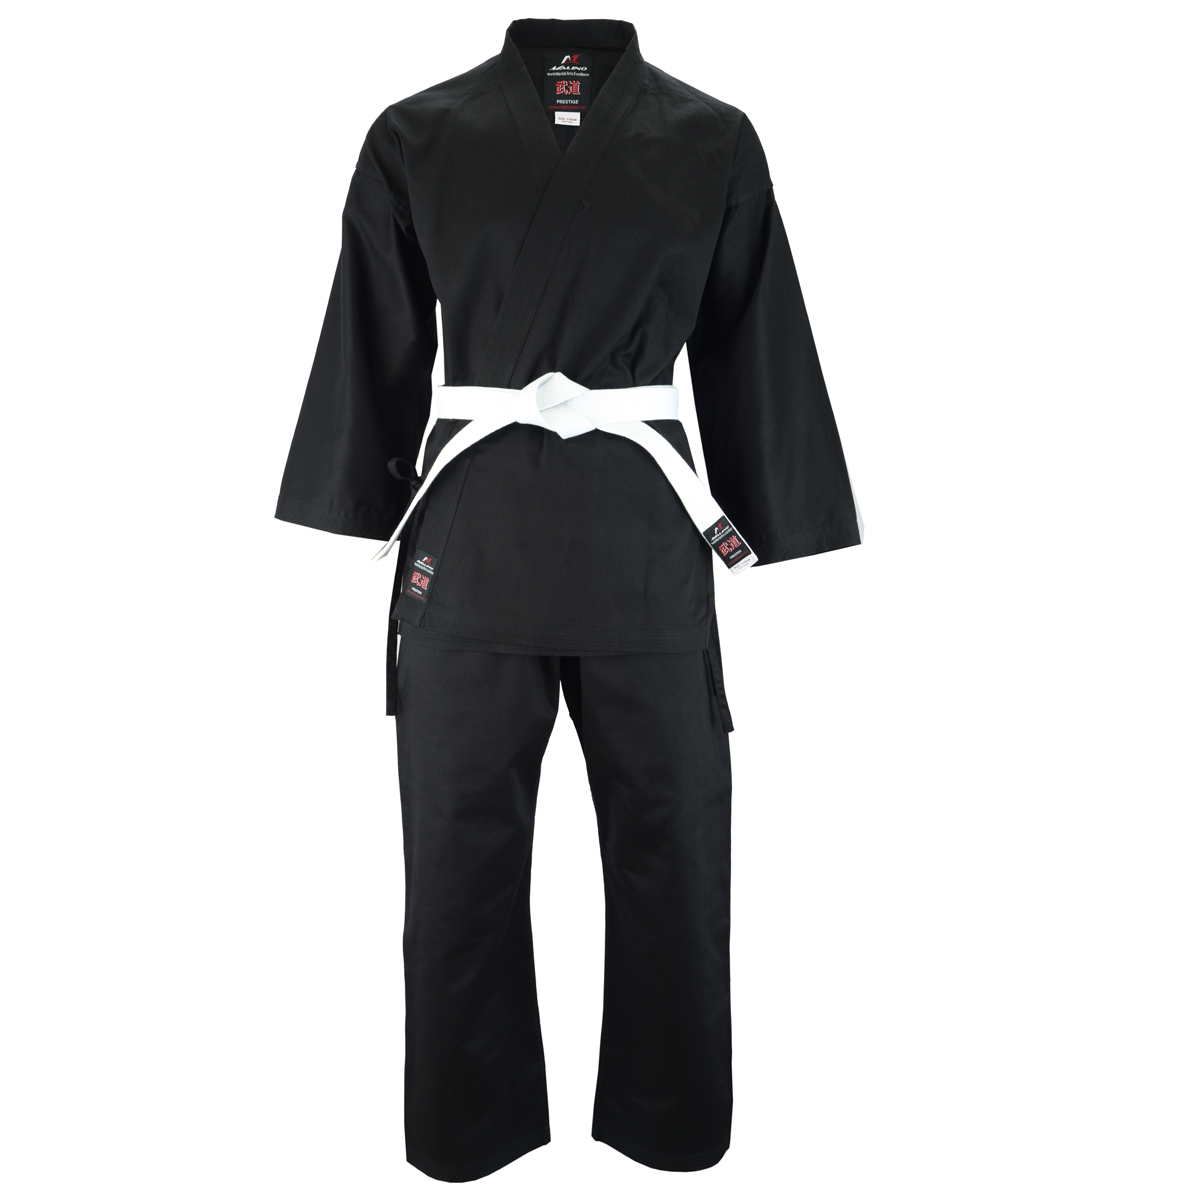 Malino Kids Karate Suit Middleweight Cotton Reactive Black - 8oz